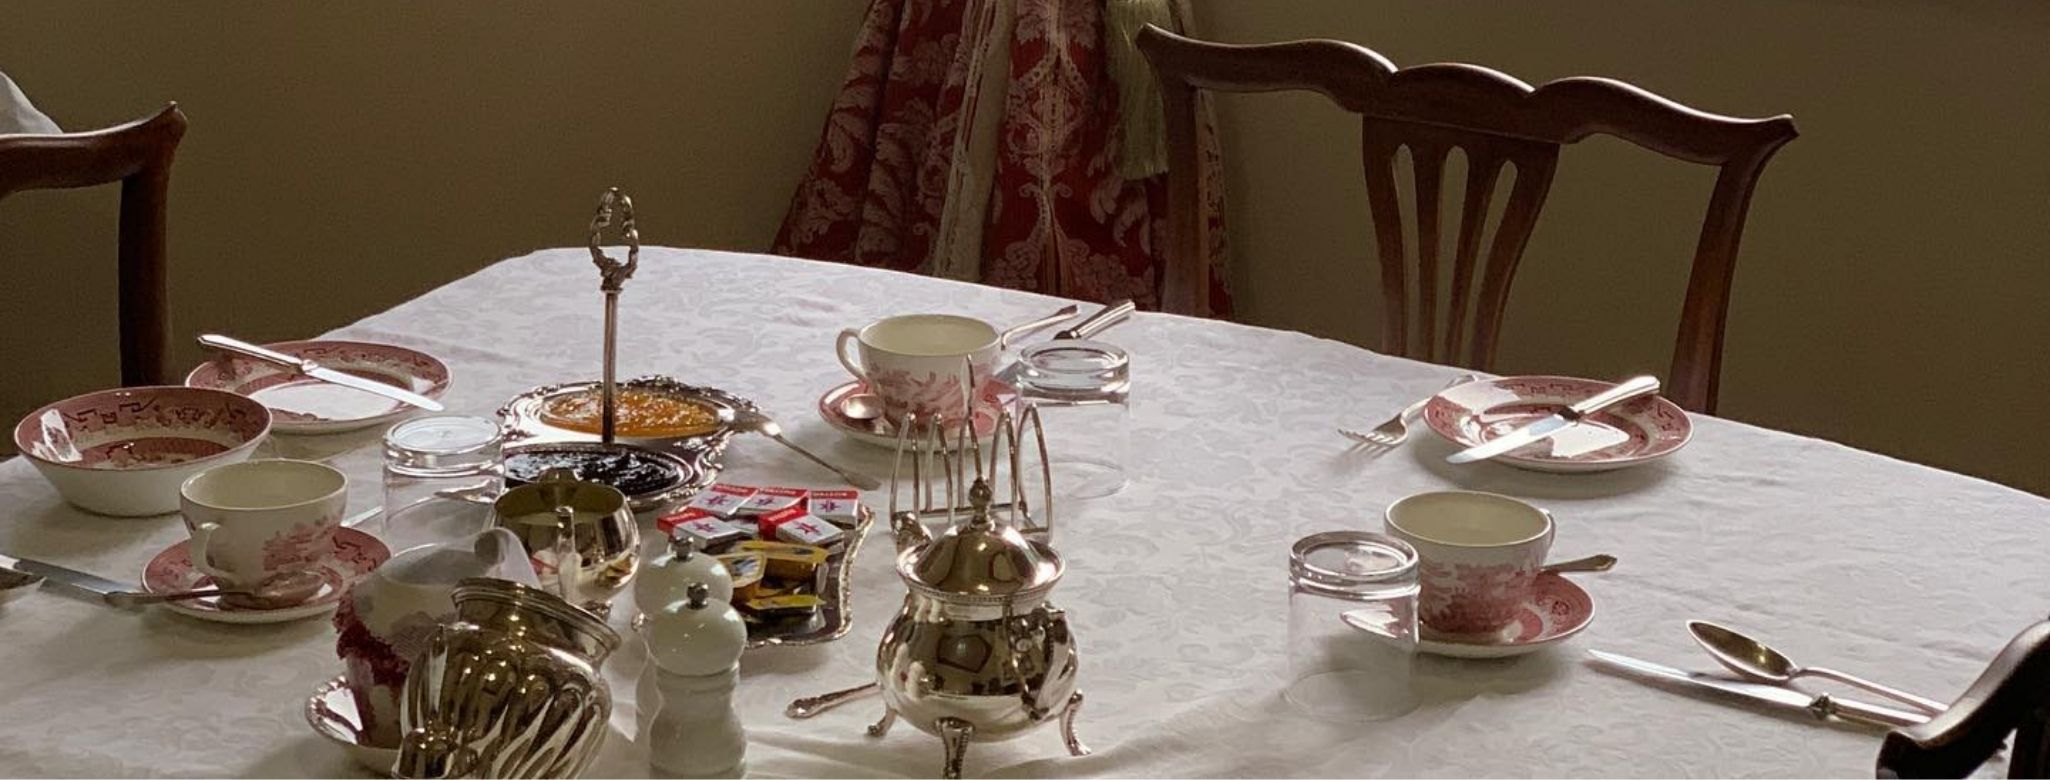 Enjoy Silver Service Breakfast Cooked To Order When You Stay At Penghana Bed And Breakfast In Queenstown, Tasmania